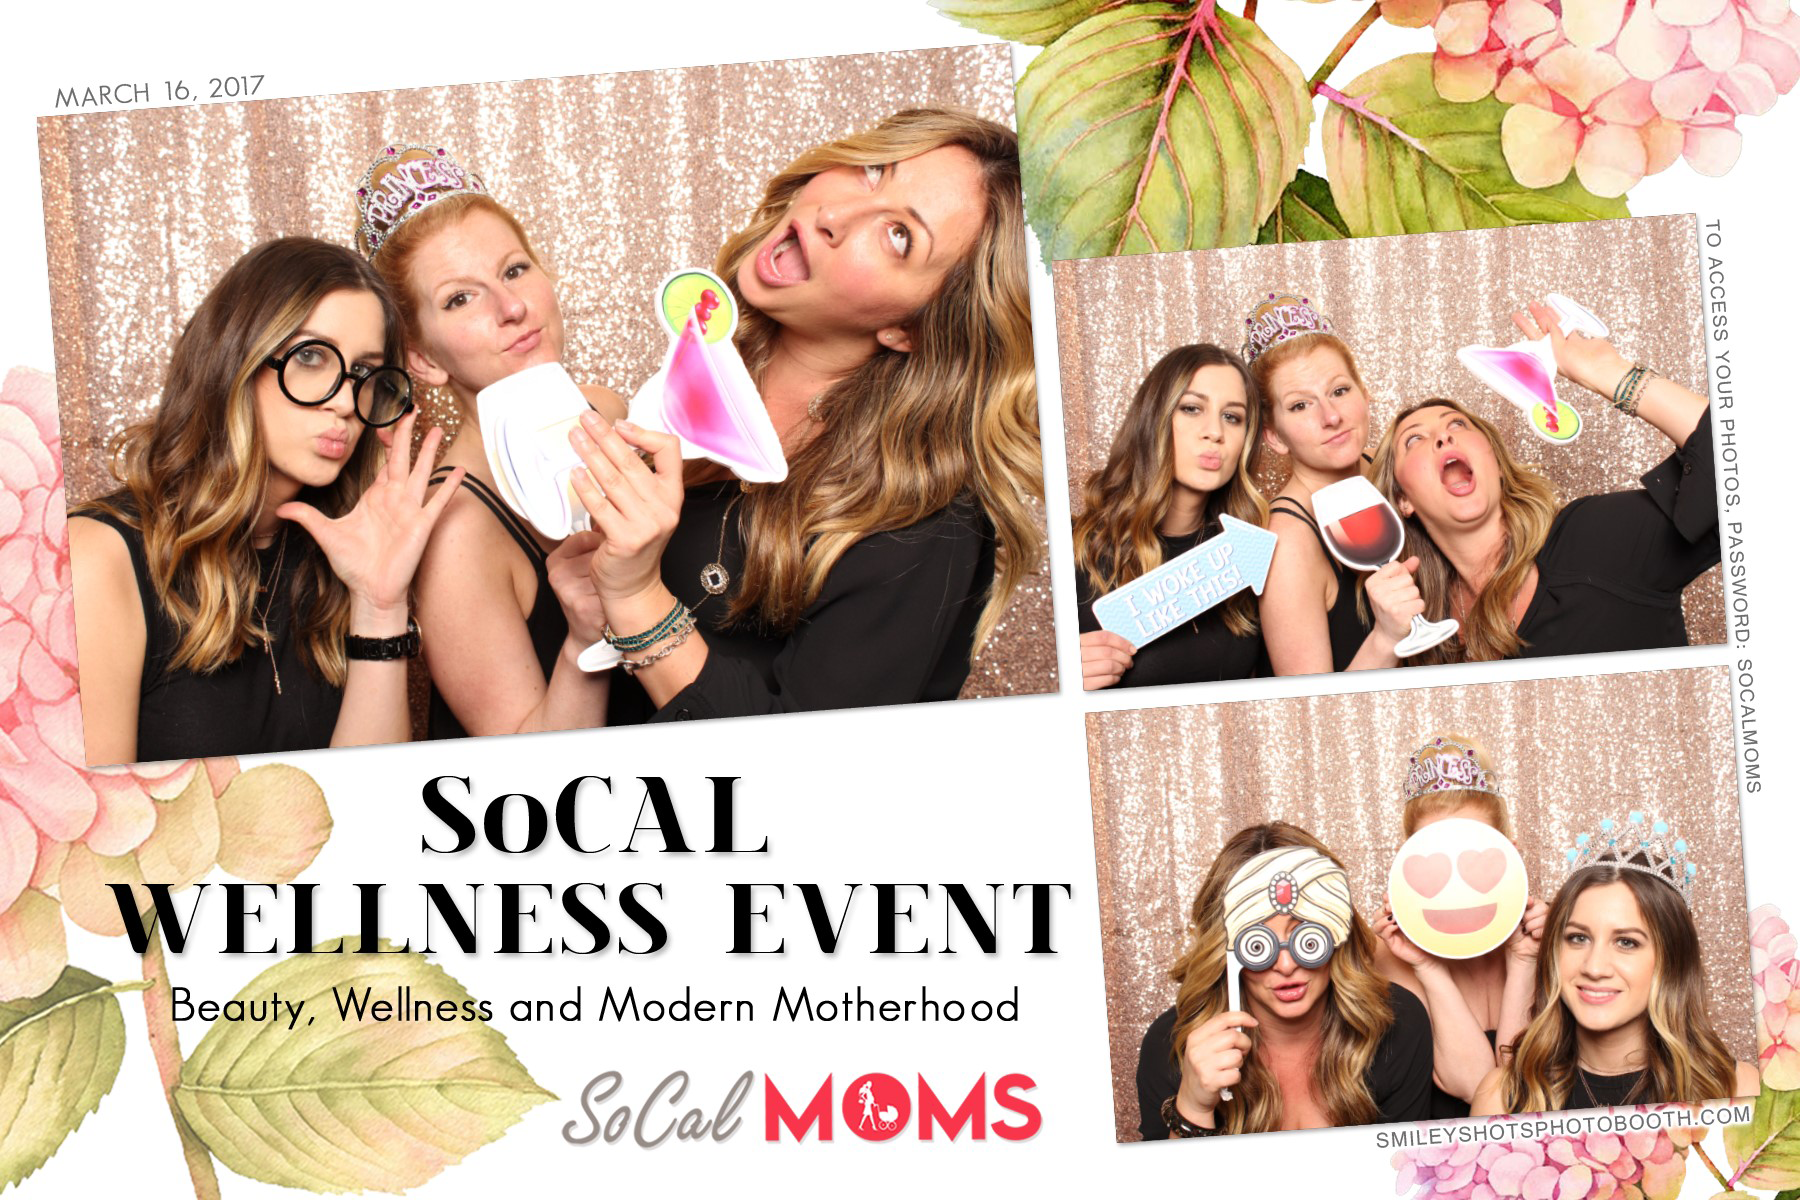 Socal Wellness Event Socal Moms Smiley Shots Photo Booth Photobooth (29).png